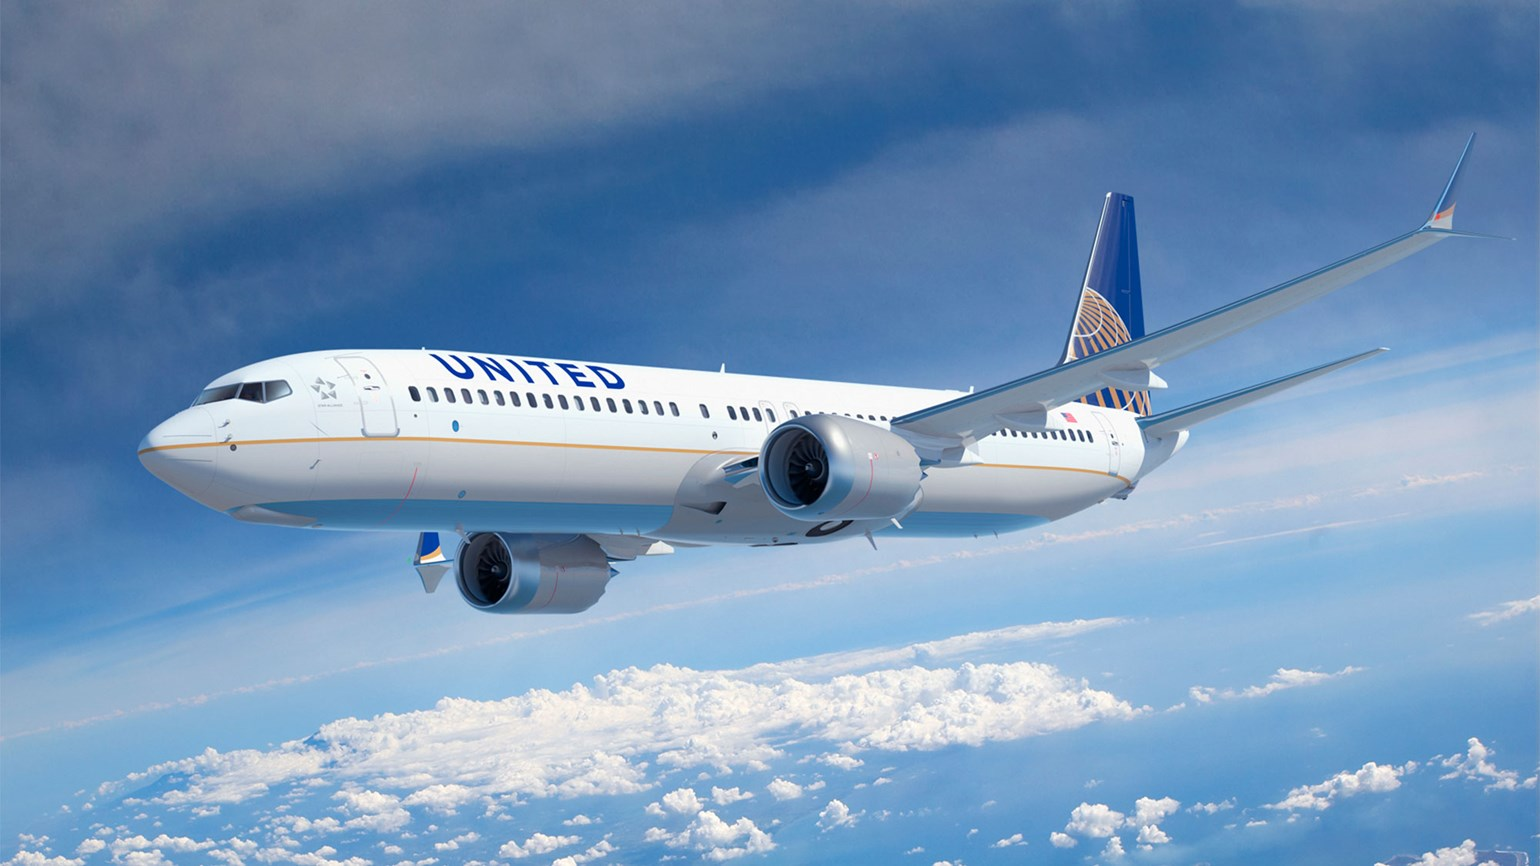 United to launch Boeing 737 Max 9 on Houston routes